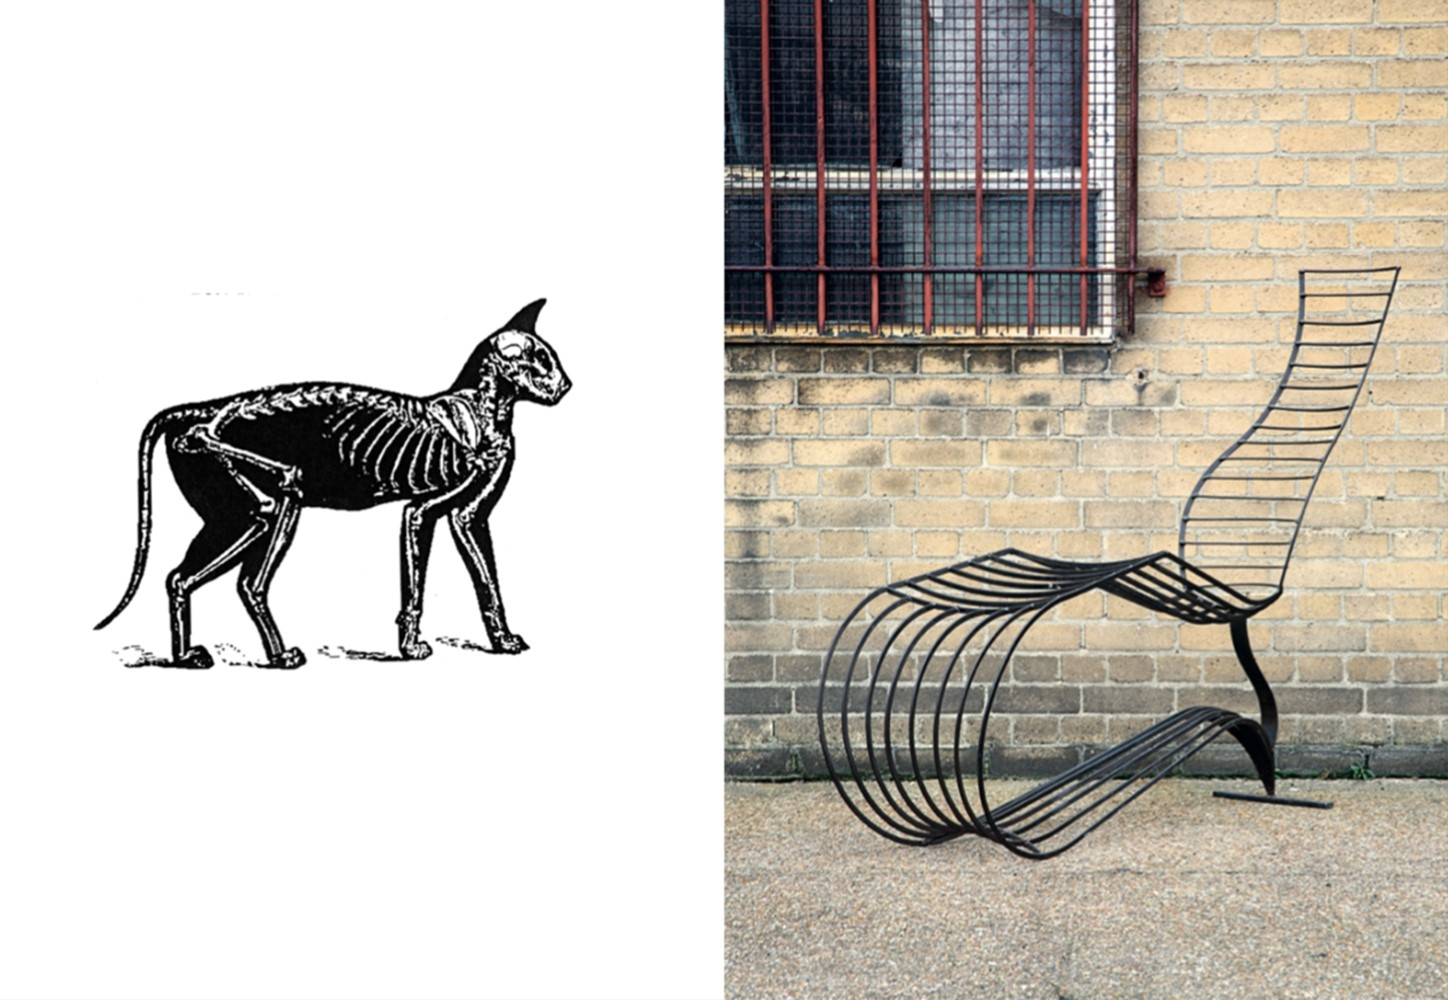 (L) Cat Skeleton, (R) Tom Dixon, Bolide Chaise, 1988